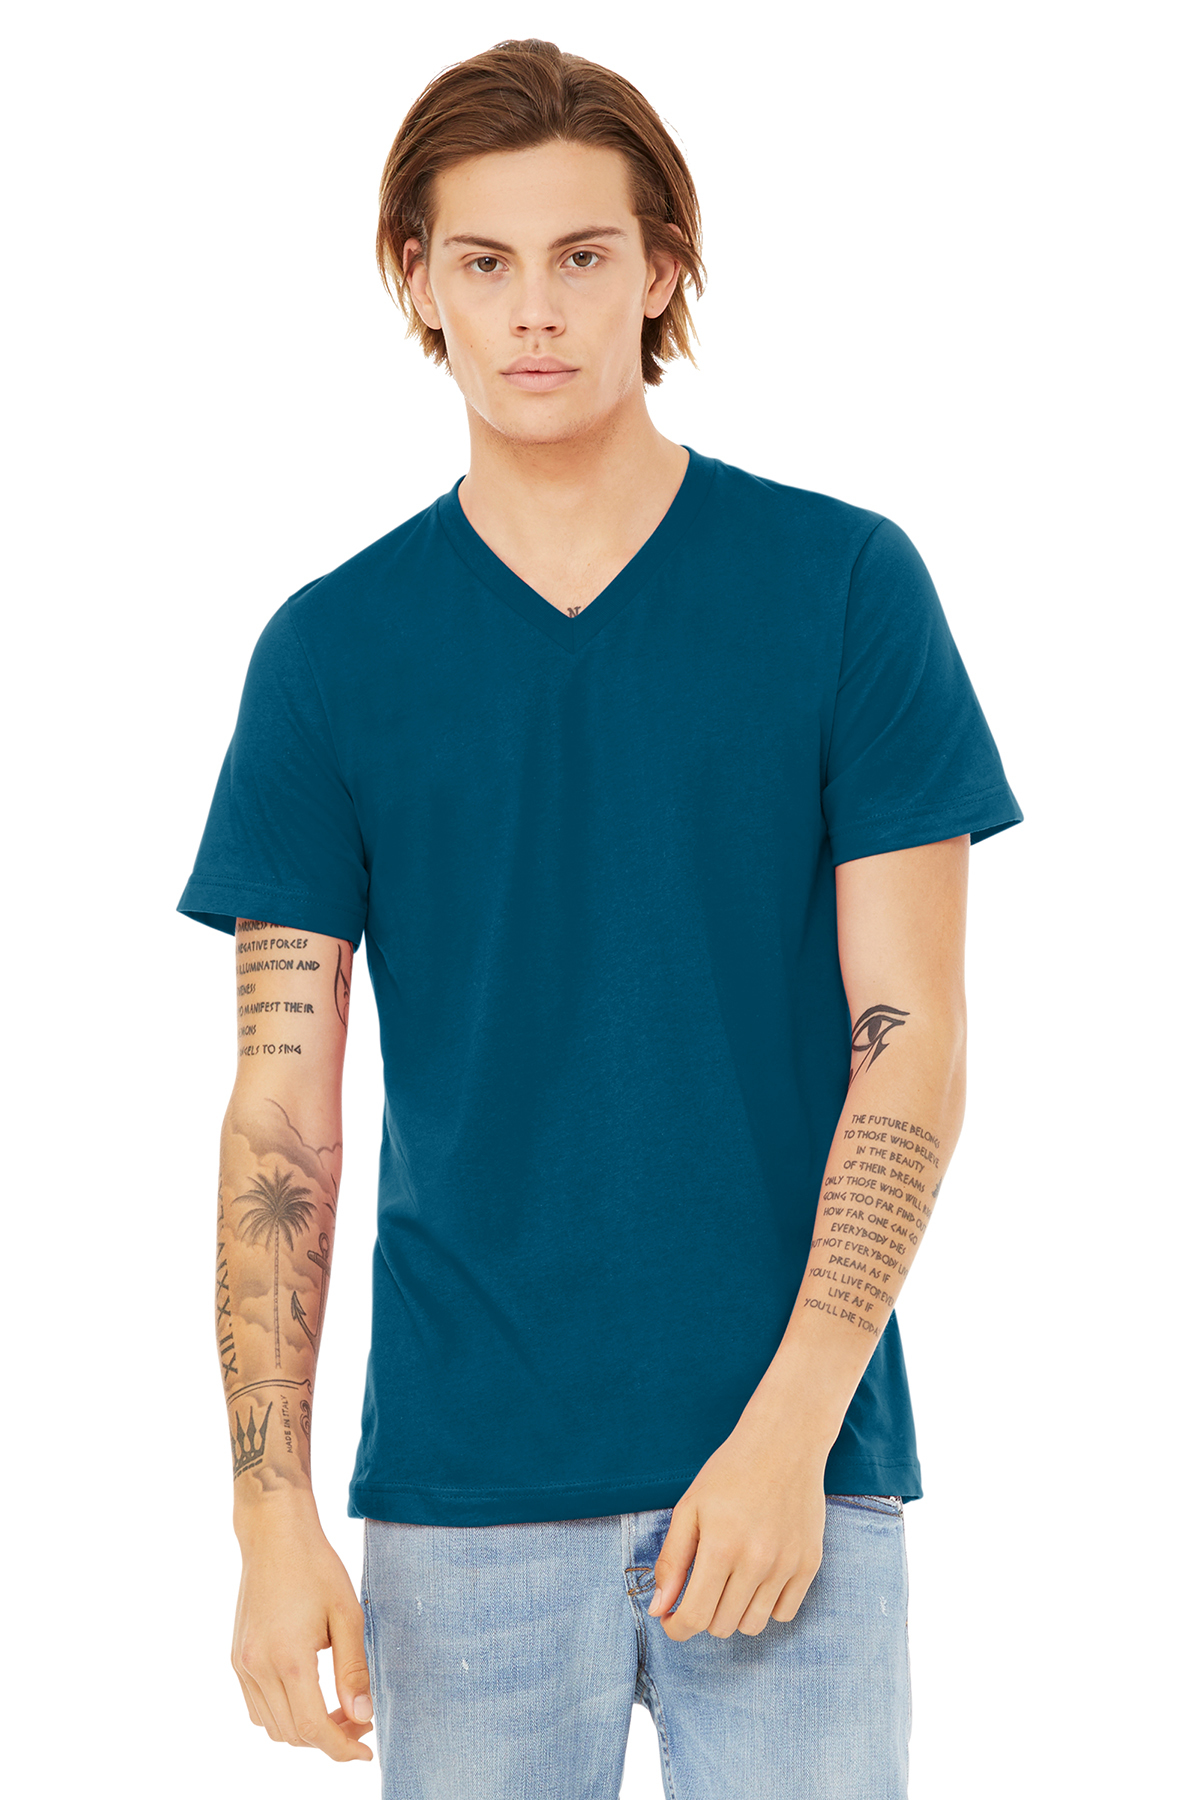 76e9857be57f BELLA+CANVAS ® Unisex Jersey Short Sleeve V-Neck Tee | Adult ...